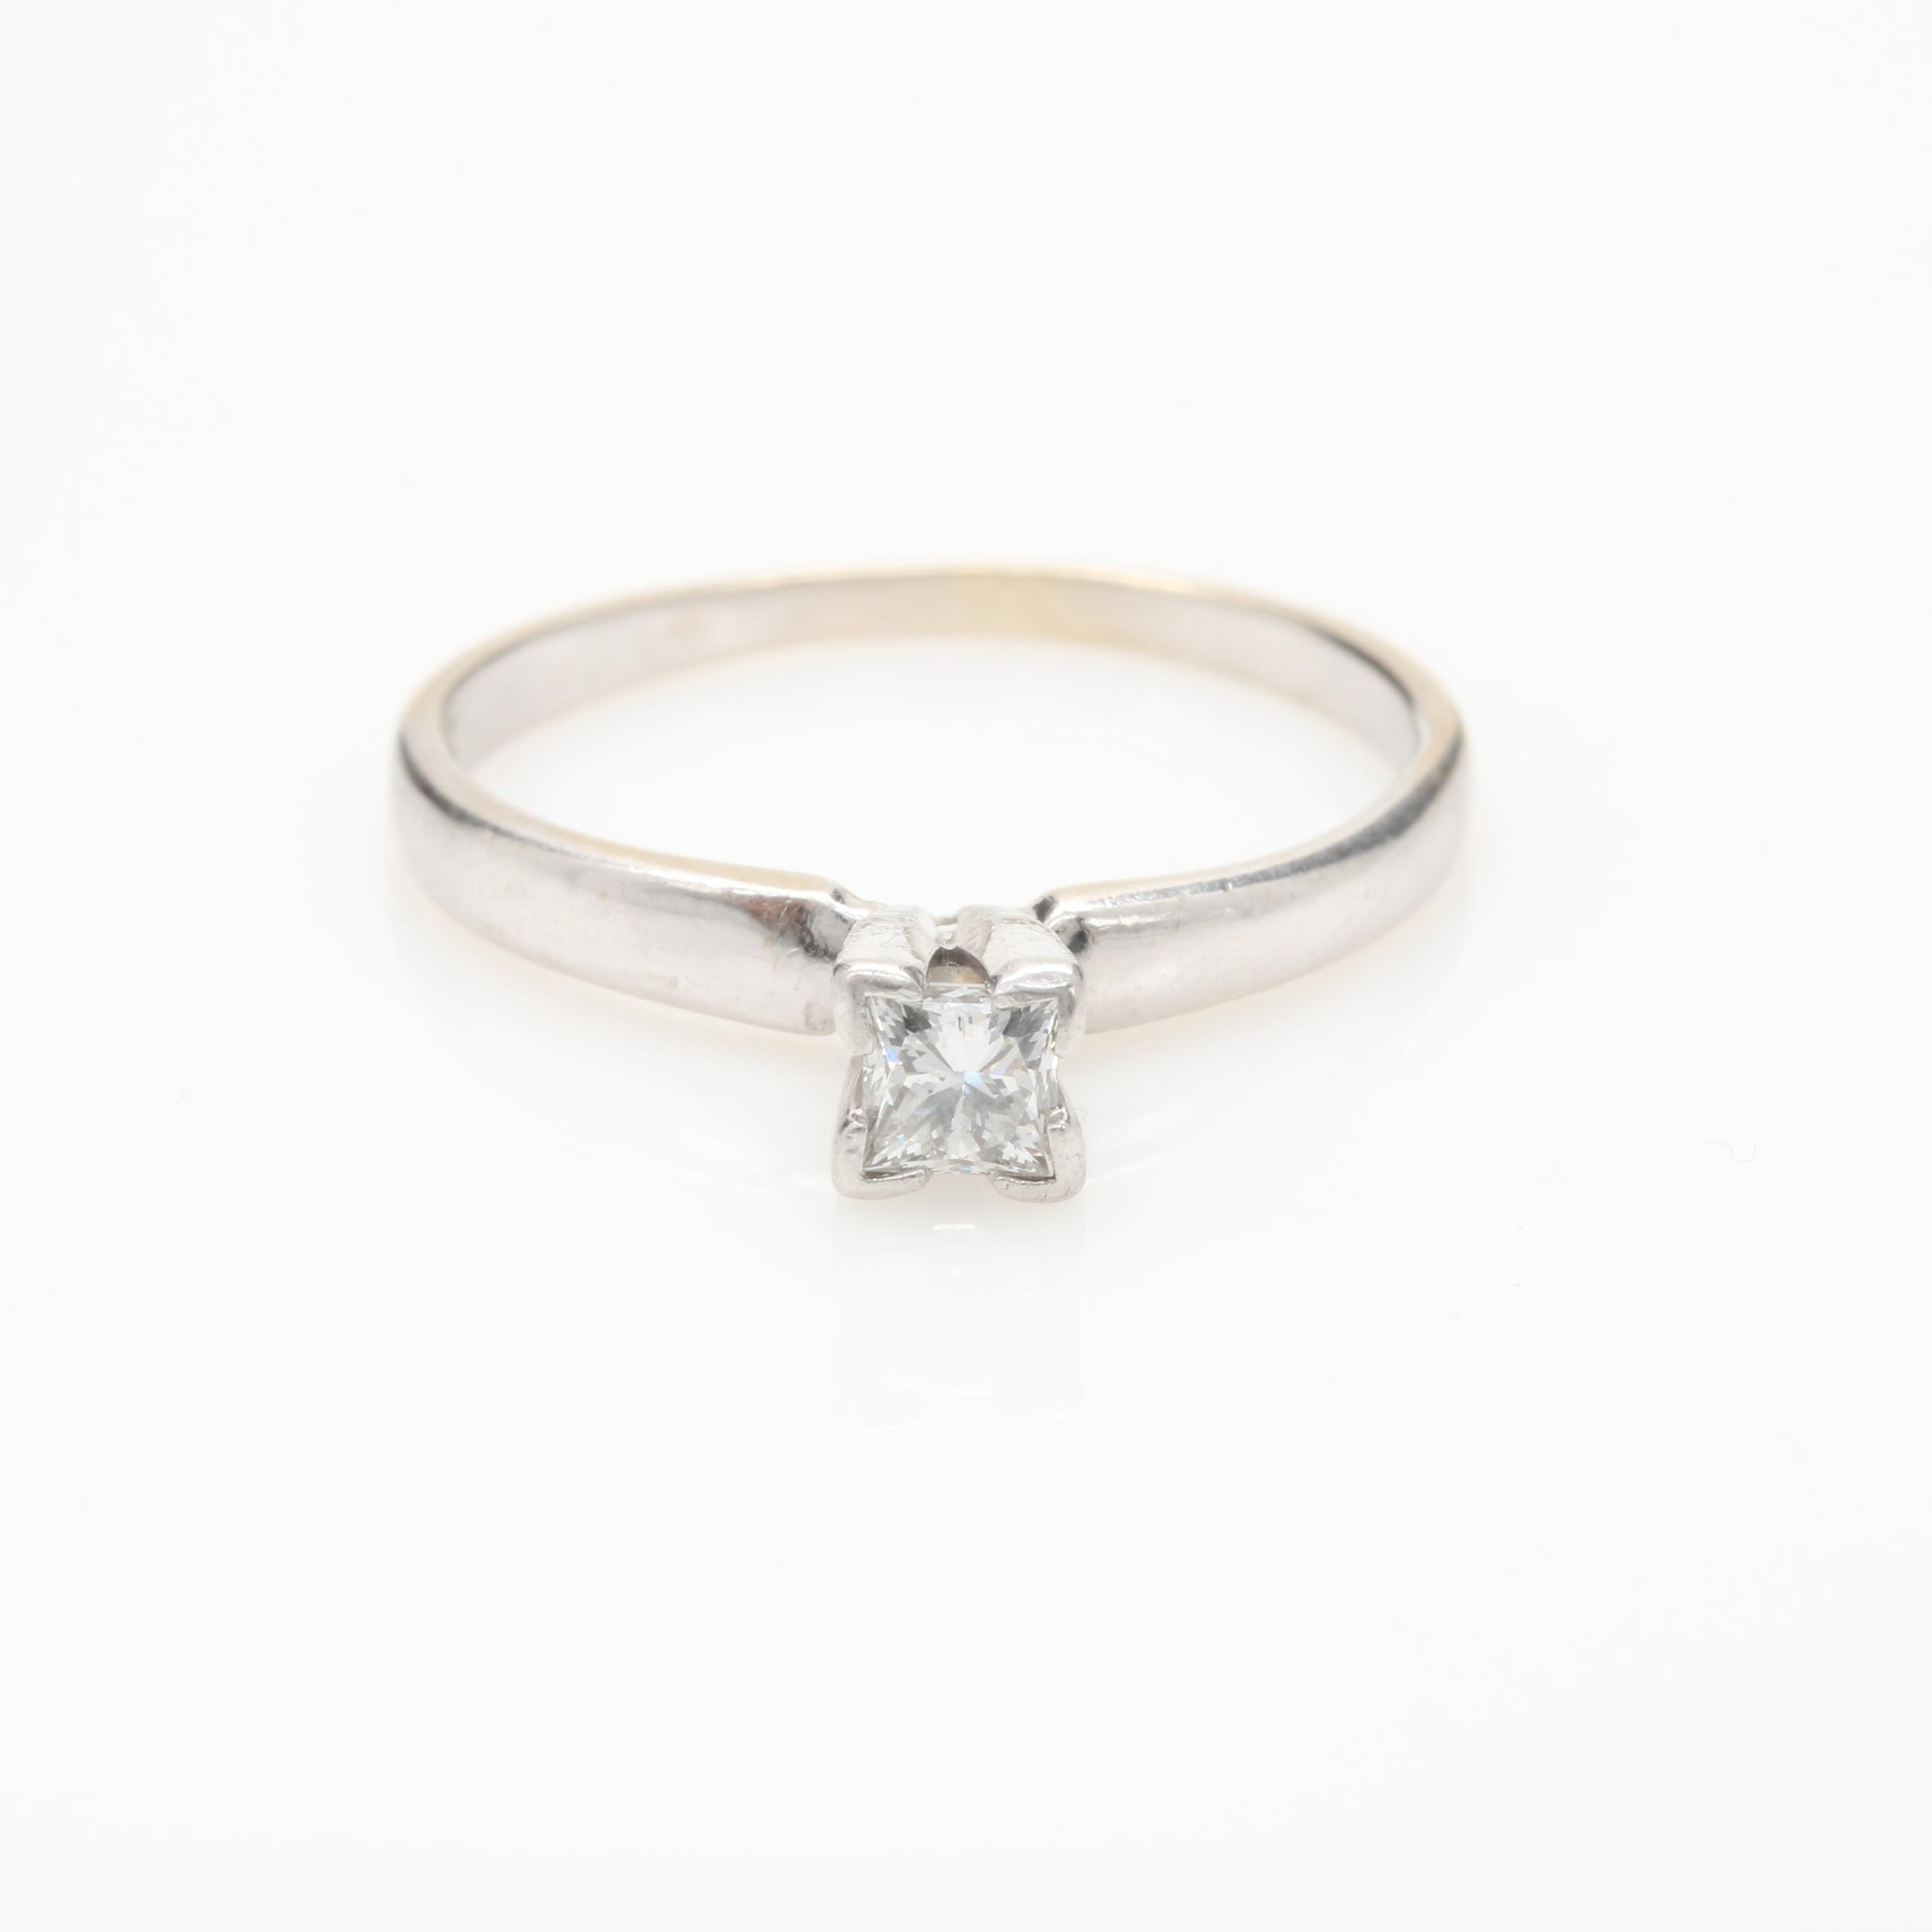 14K White Gold Diamond Solitaire Ring with Platinum Head